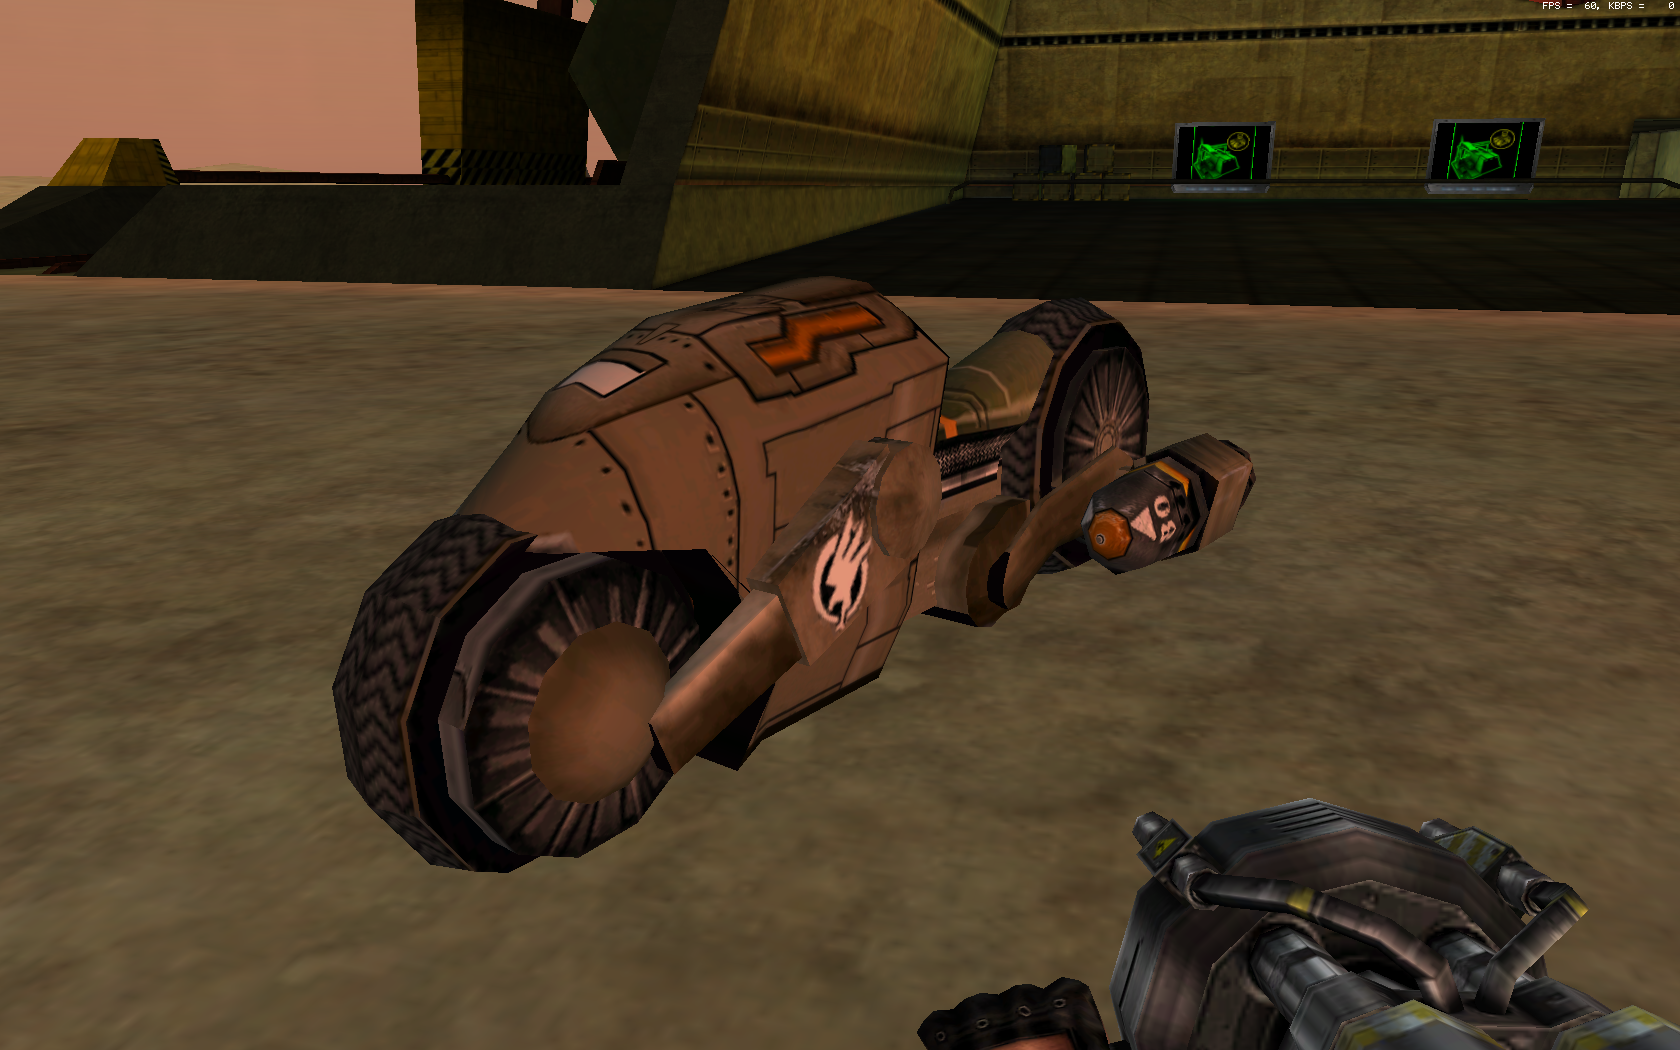 tcw_gdi_attack_bike.png